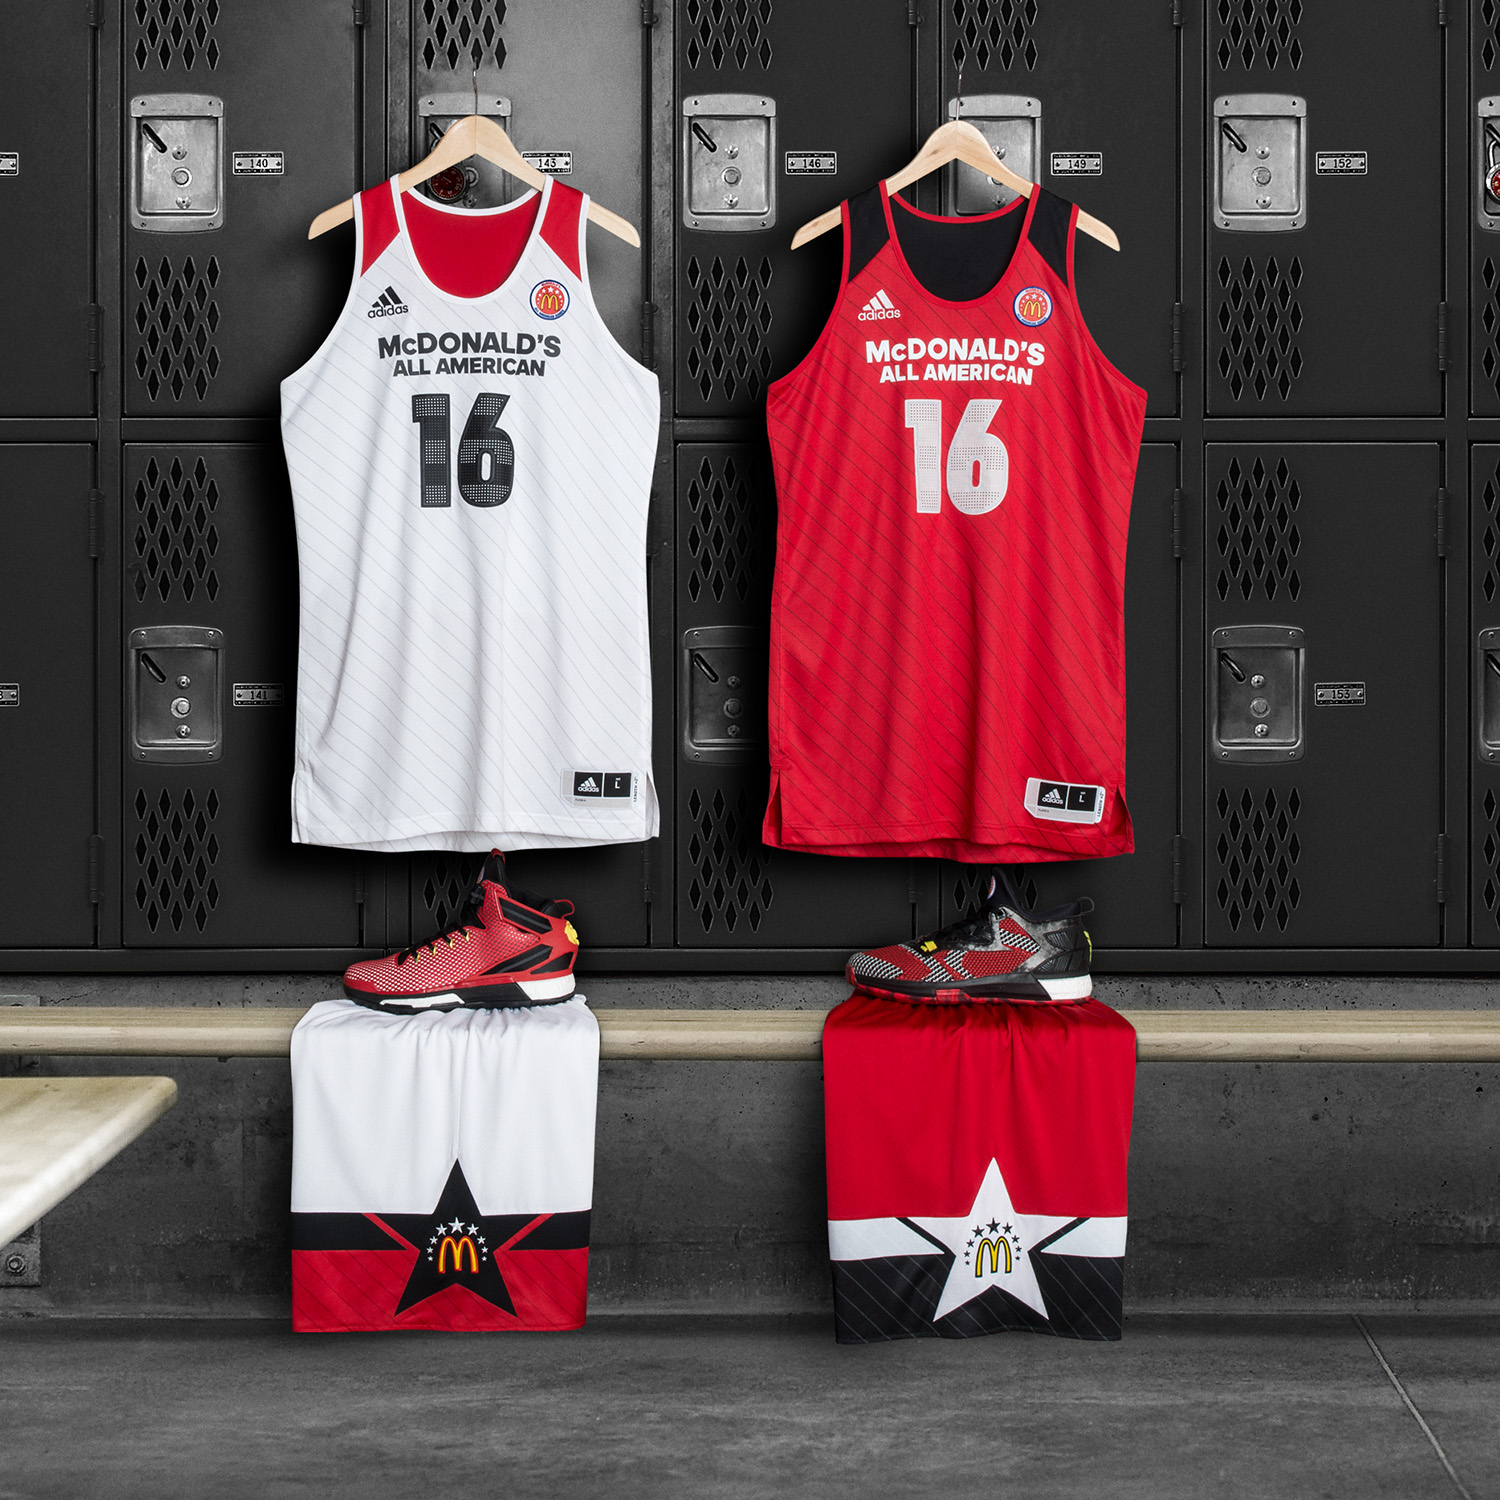 e6ad5aa52 adidas Unveils Uniform Collection for 2016 McDonald s All American ...